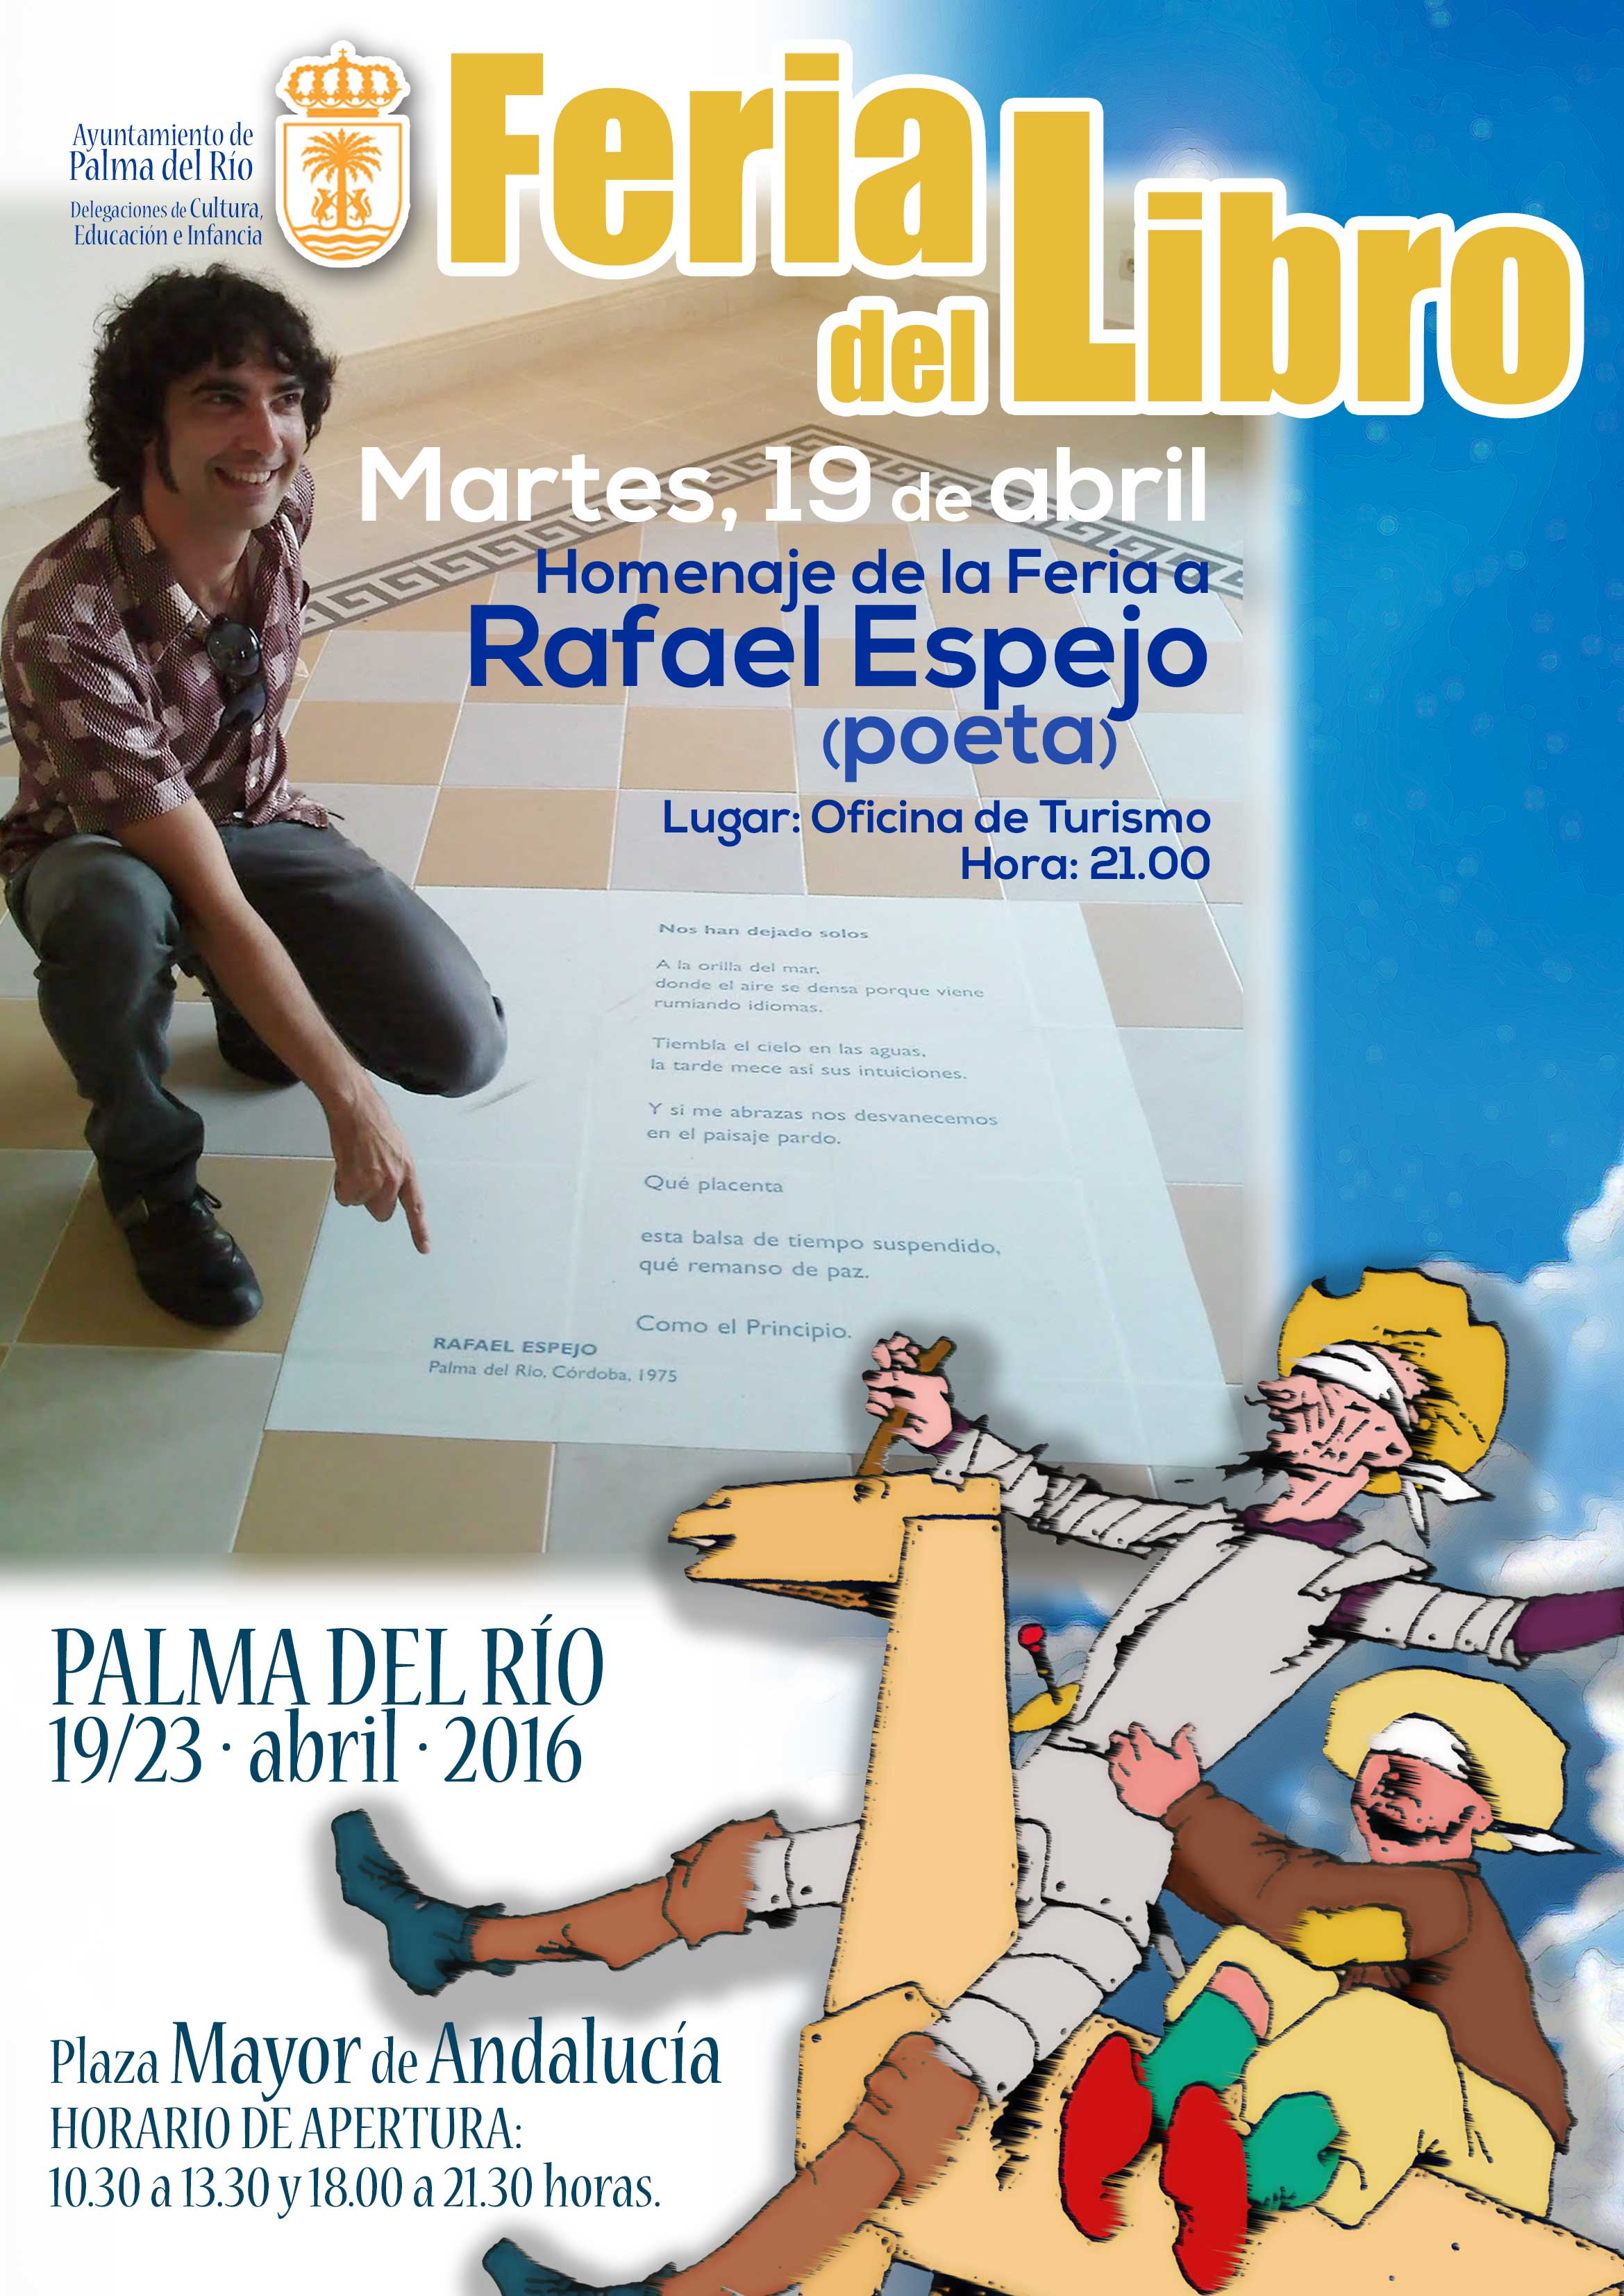 https://www.palmadelrio.es/sites/default/files/cartel-feria-del-libro-rafa-espejo-2016.jpg